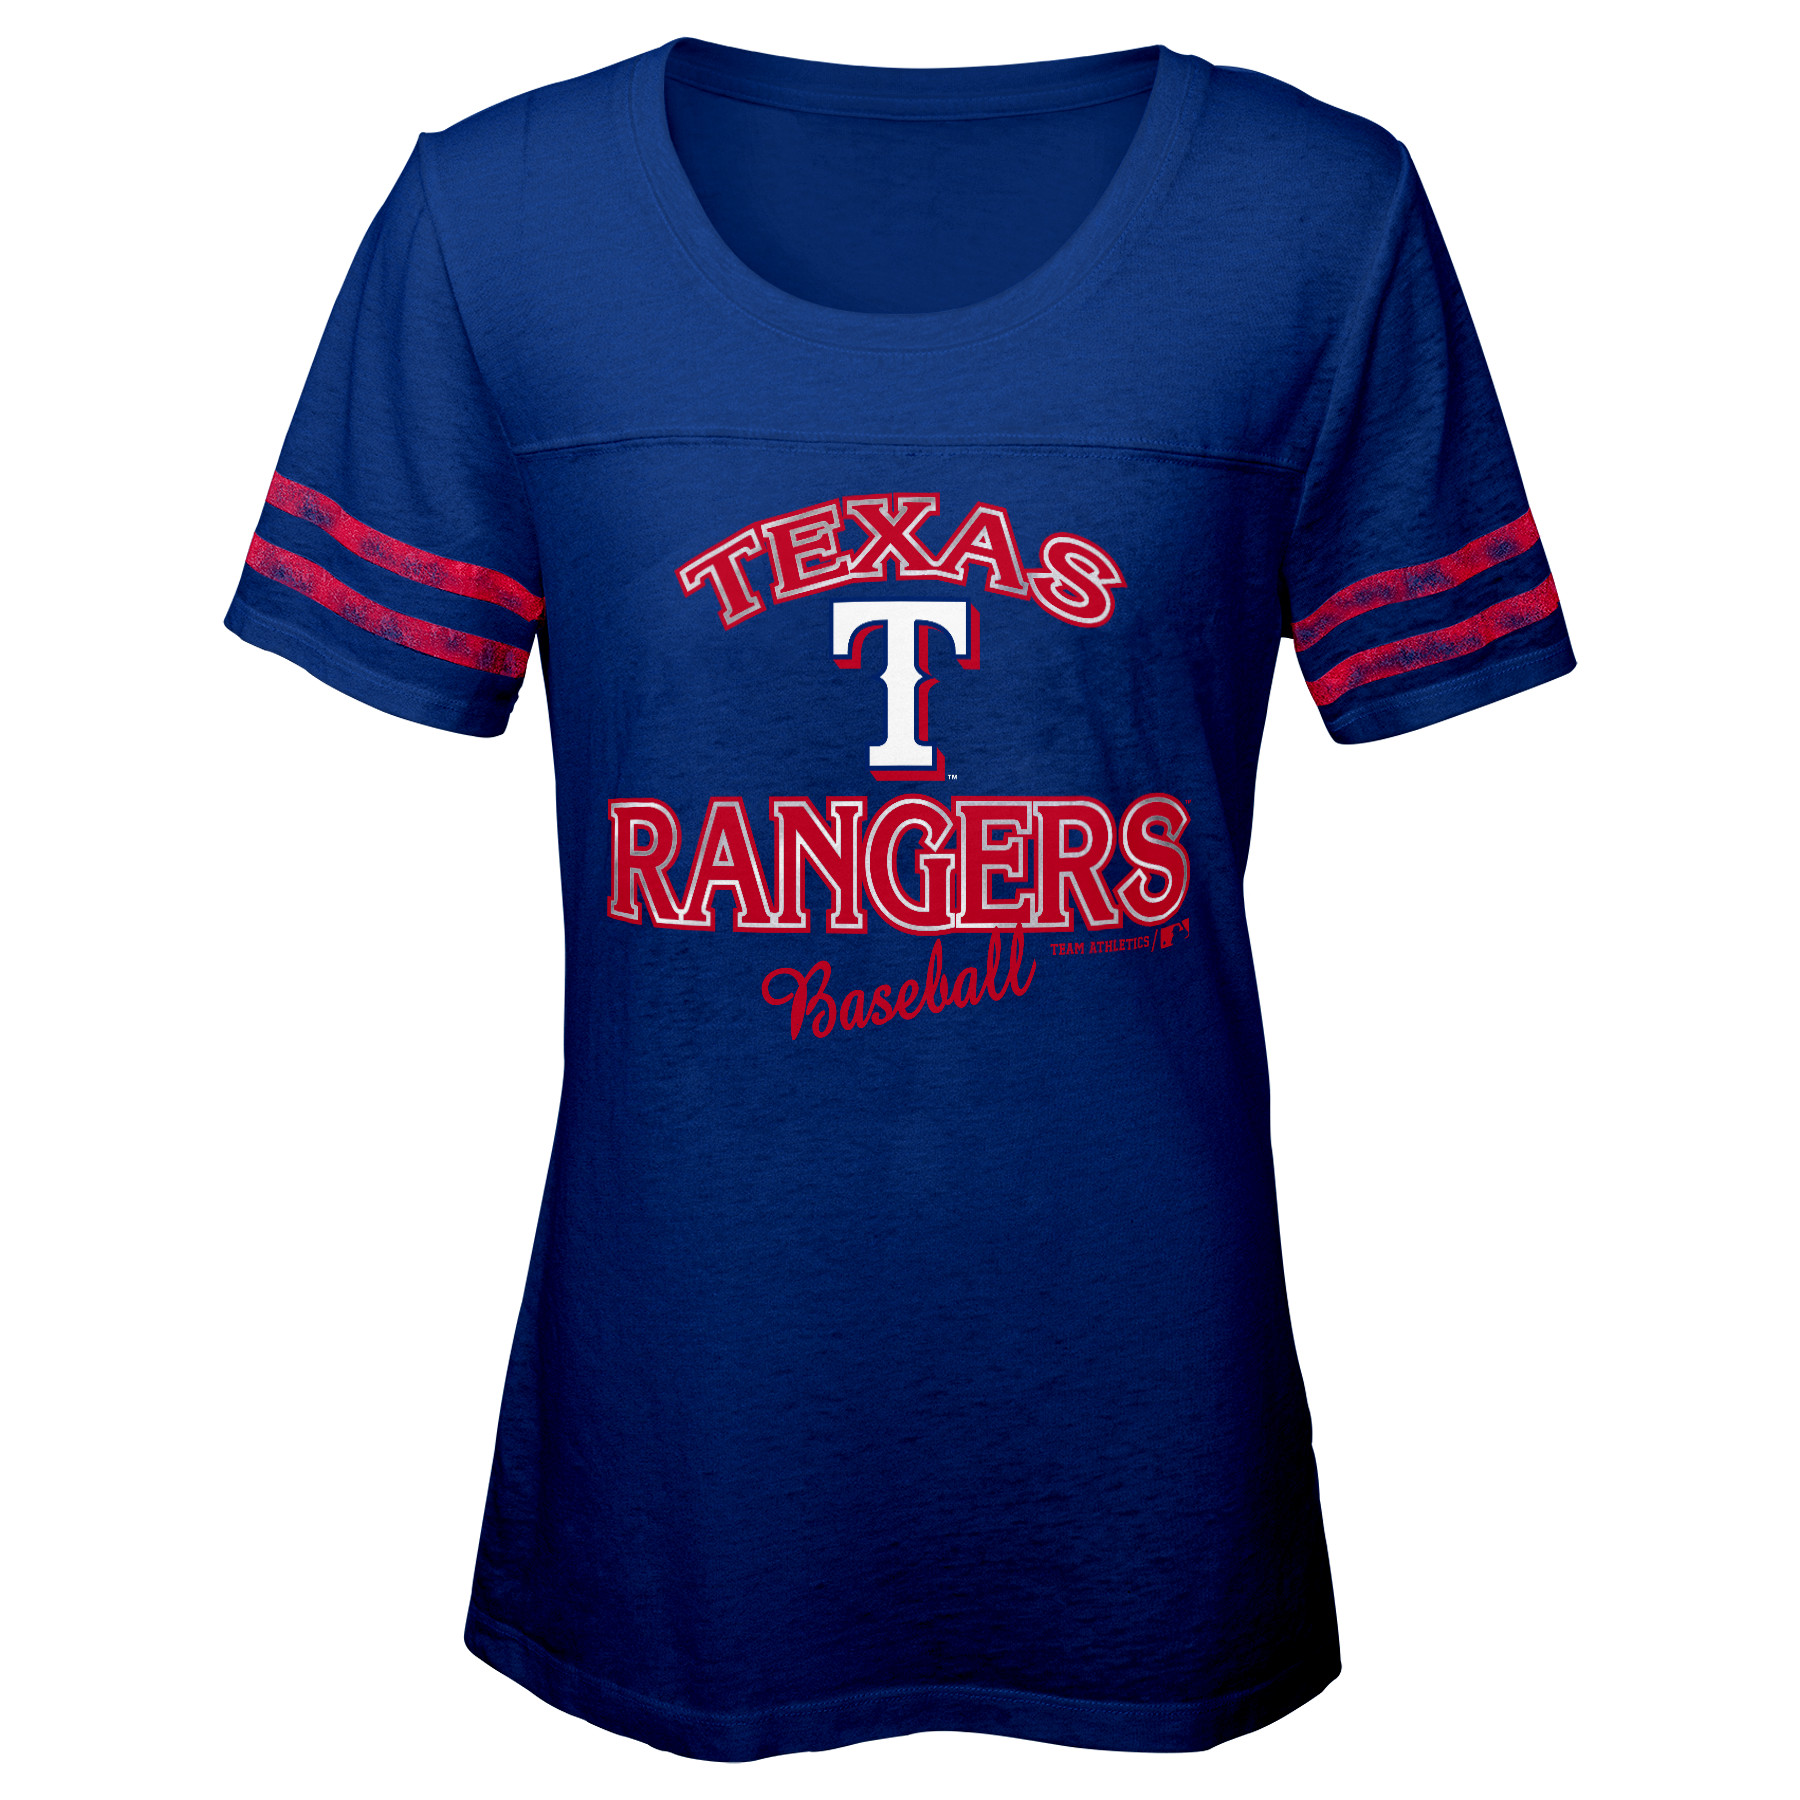 MLB Texas RANGERS TEE Short Sleeve Girls Fashion 60% Cotton 40% Polyester Alternate Team Colors 7 - 16